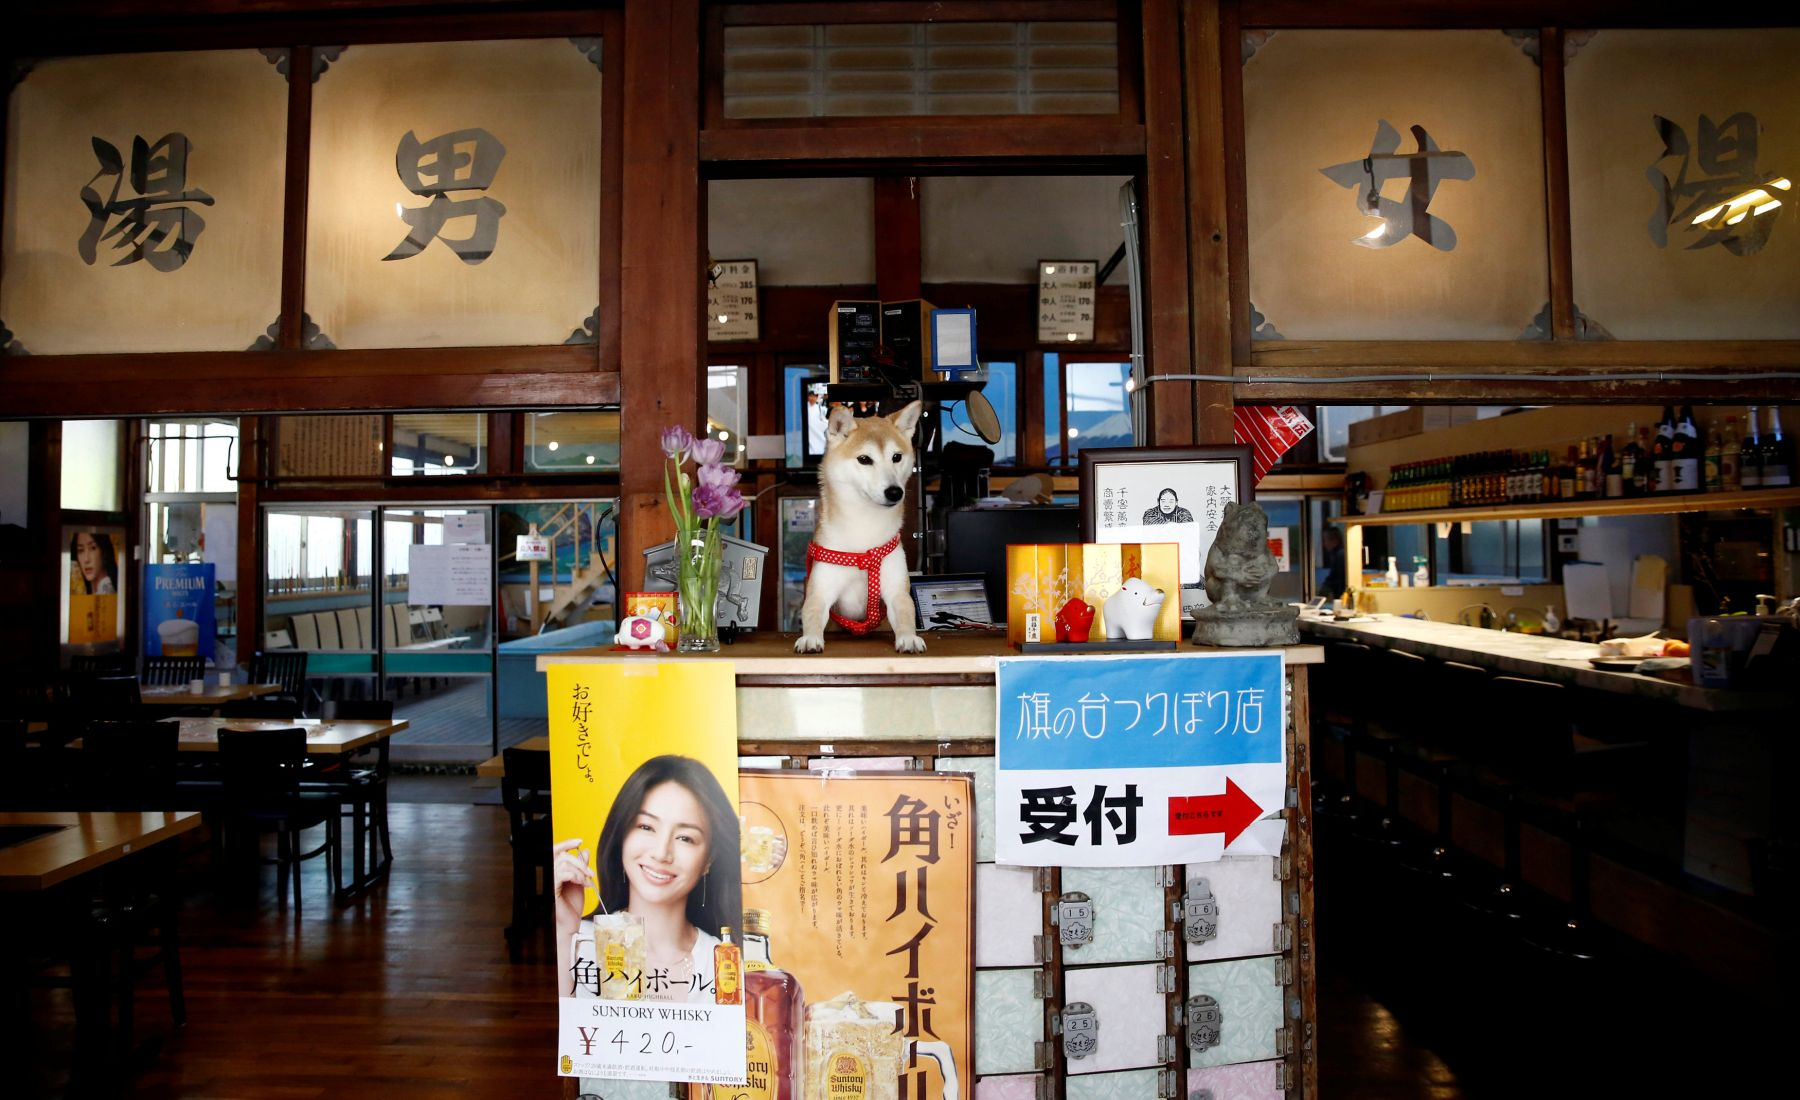 A pet dog sits on a front desk at Hatanodai Indoor Fishing, an indoor fishing facility which was converted from an old bathhouse that went out of business, in Tokyo